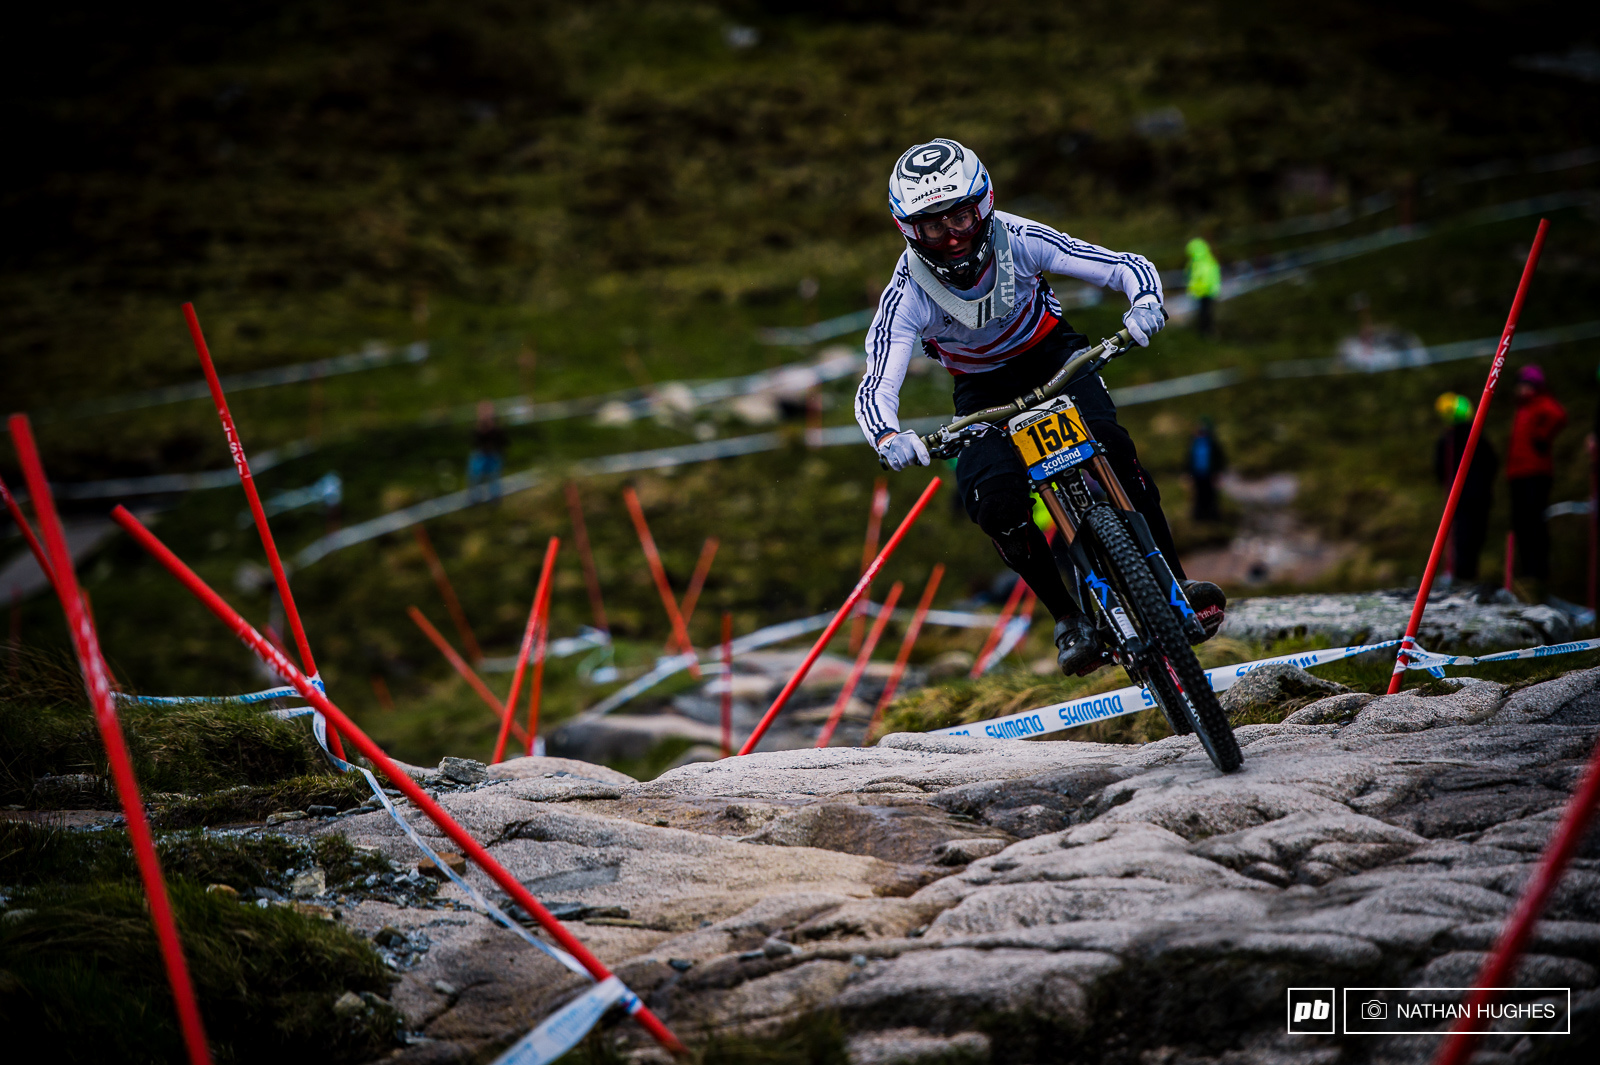 Mondraker s Innes Graham couldn t race at Lourdes because he didn t have any points... So he got a GB jersey for Fort William and nailed 17th.